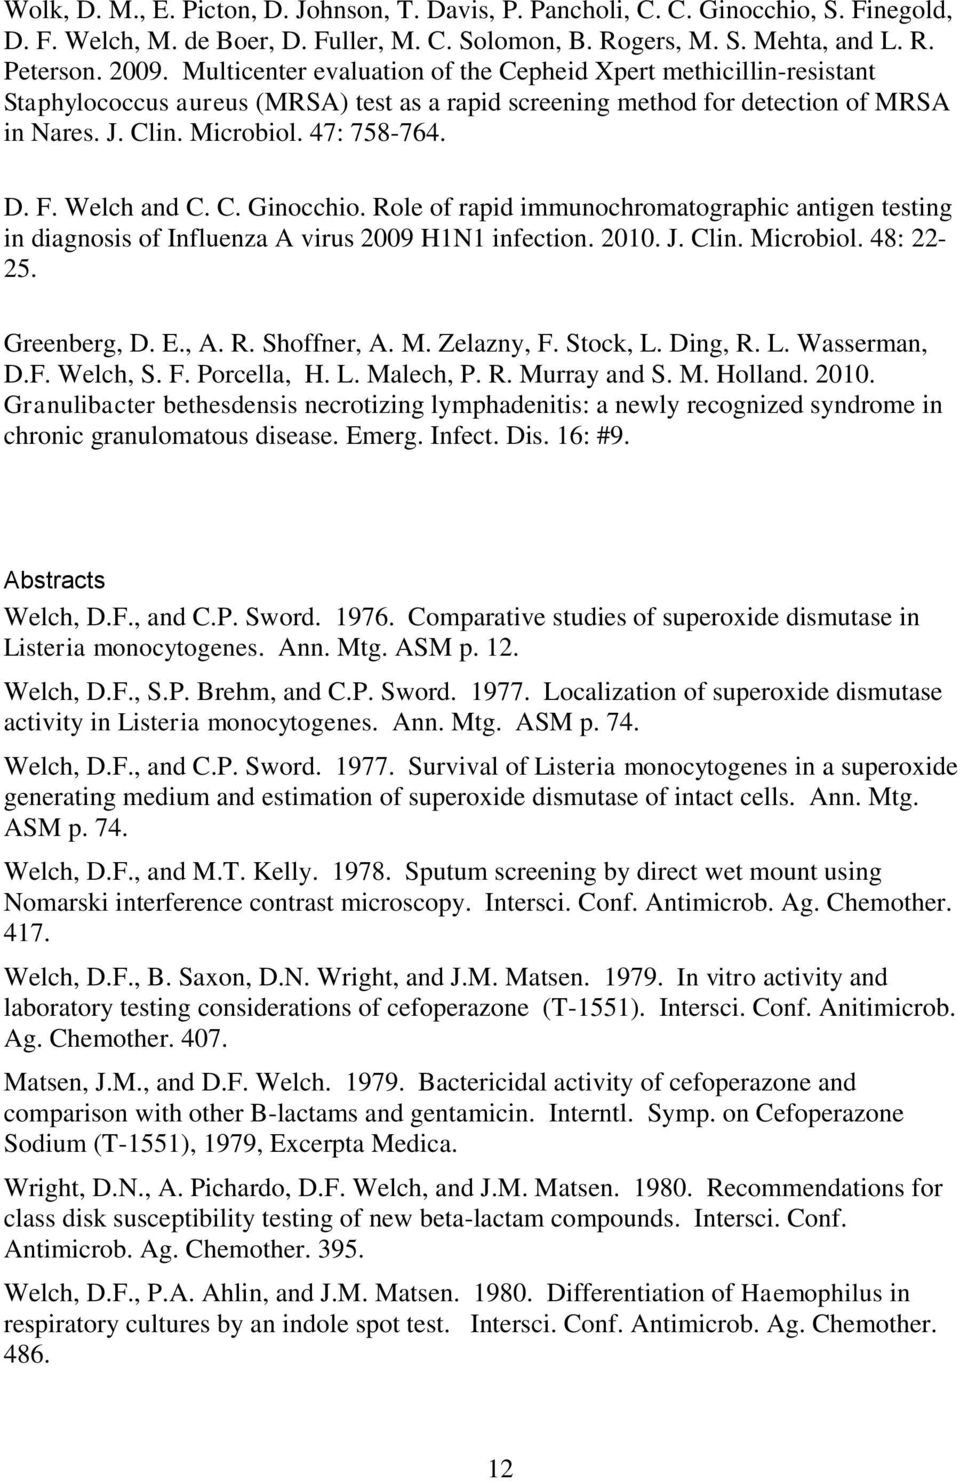 Welch and C. C. Ginocchio. Role of rapid immunochromatographic antigen testing in diagnosis of Influenza A virus 2009 H1N1 infection. 2010. J. Clin. Microbiol. 48: 22-25. Greenberg, D. E., A. R. Shoffner, A.